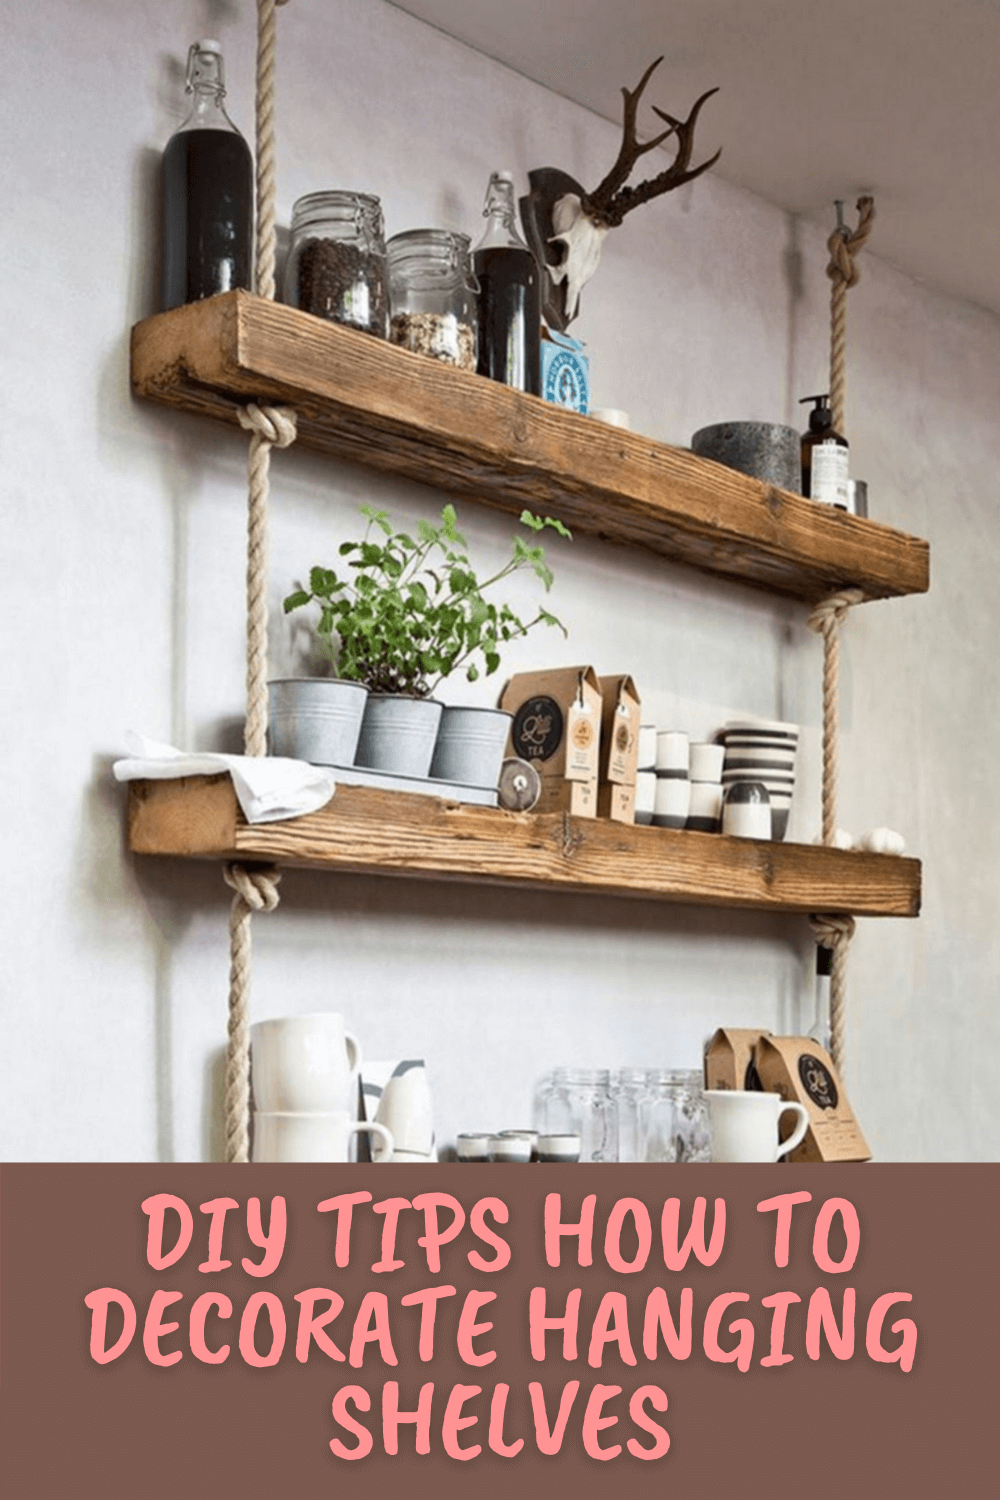 DIY TIPS HOW TO DECORATE HANGING SHELVES